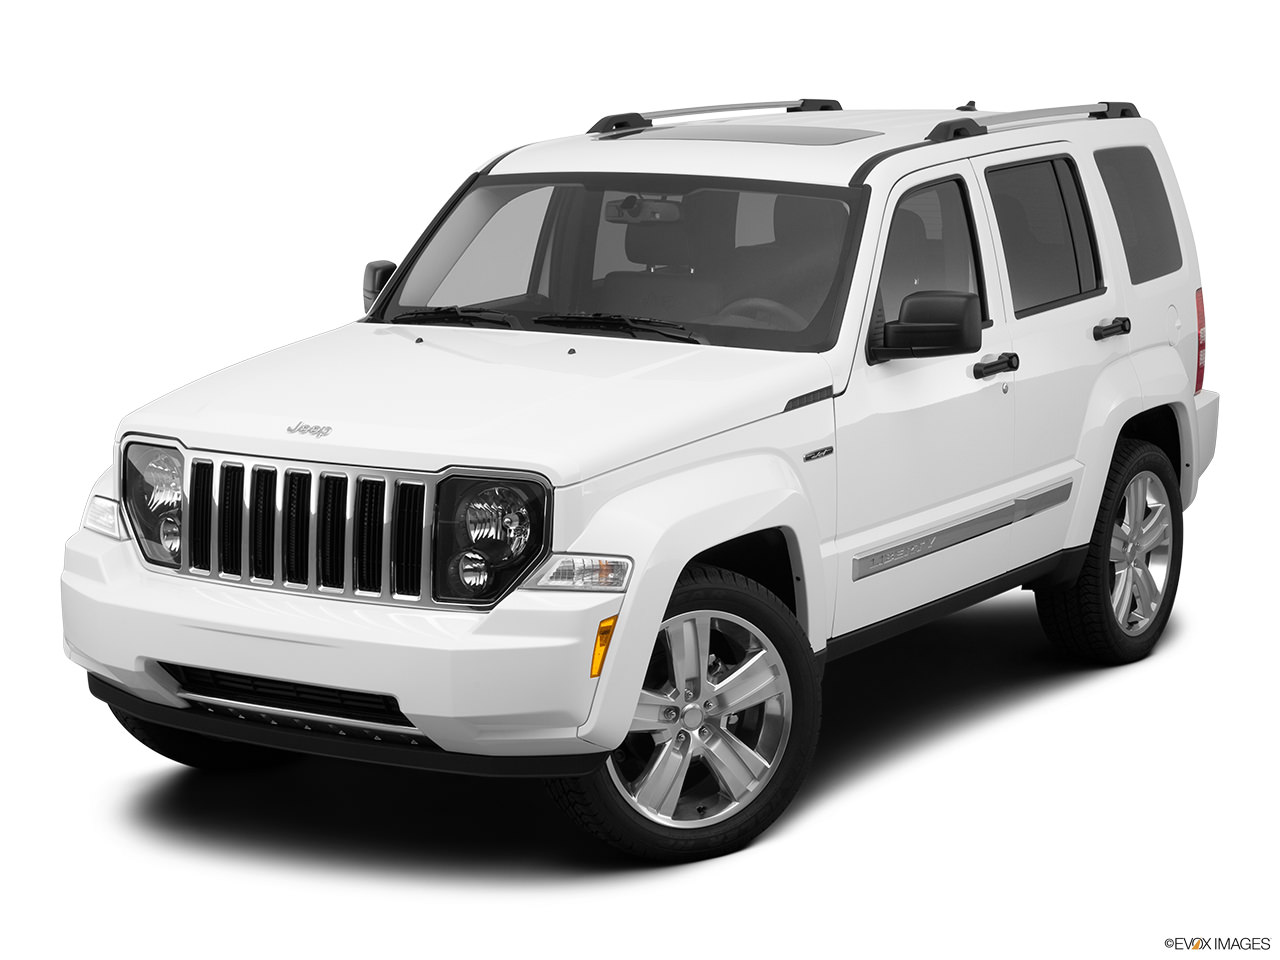 Captivating Jeep Certified Pre Owned (CPO) Car Program